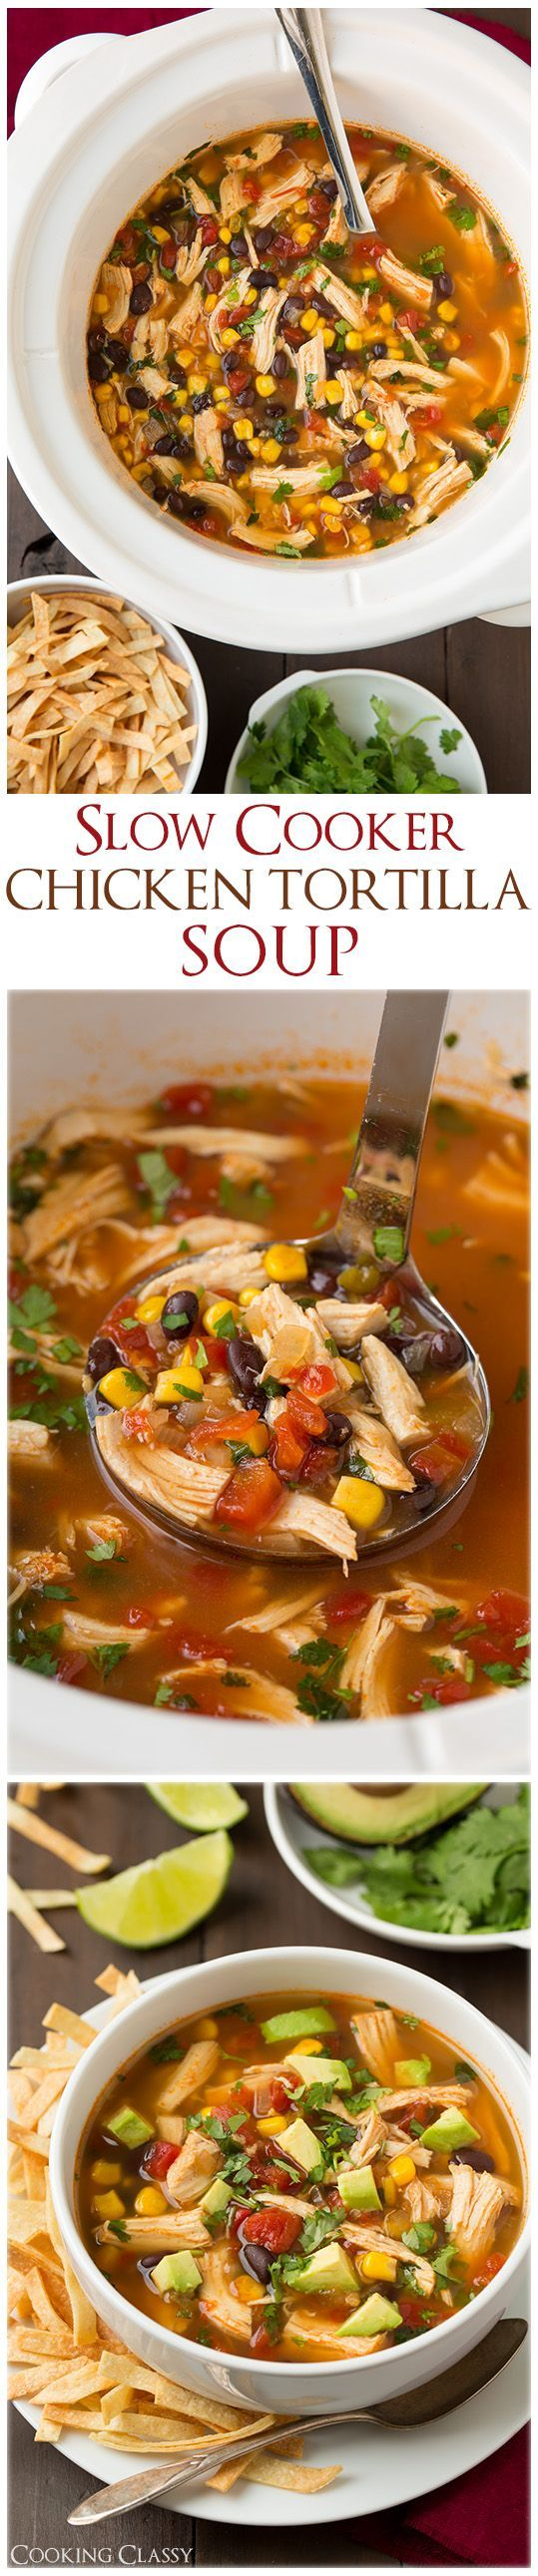 Slow Cooker Chicken Tortilla Soup - this is definitely ...